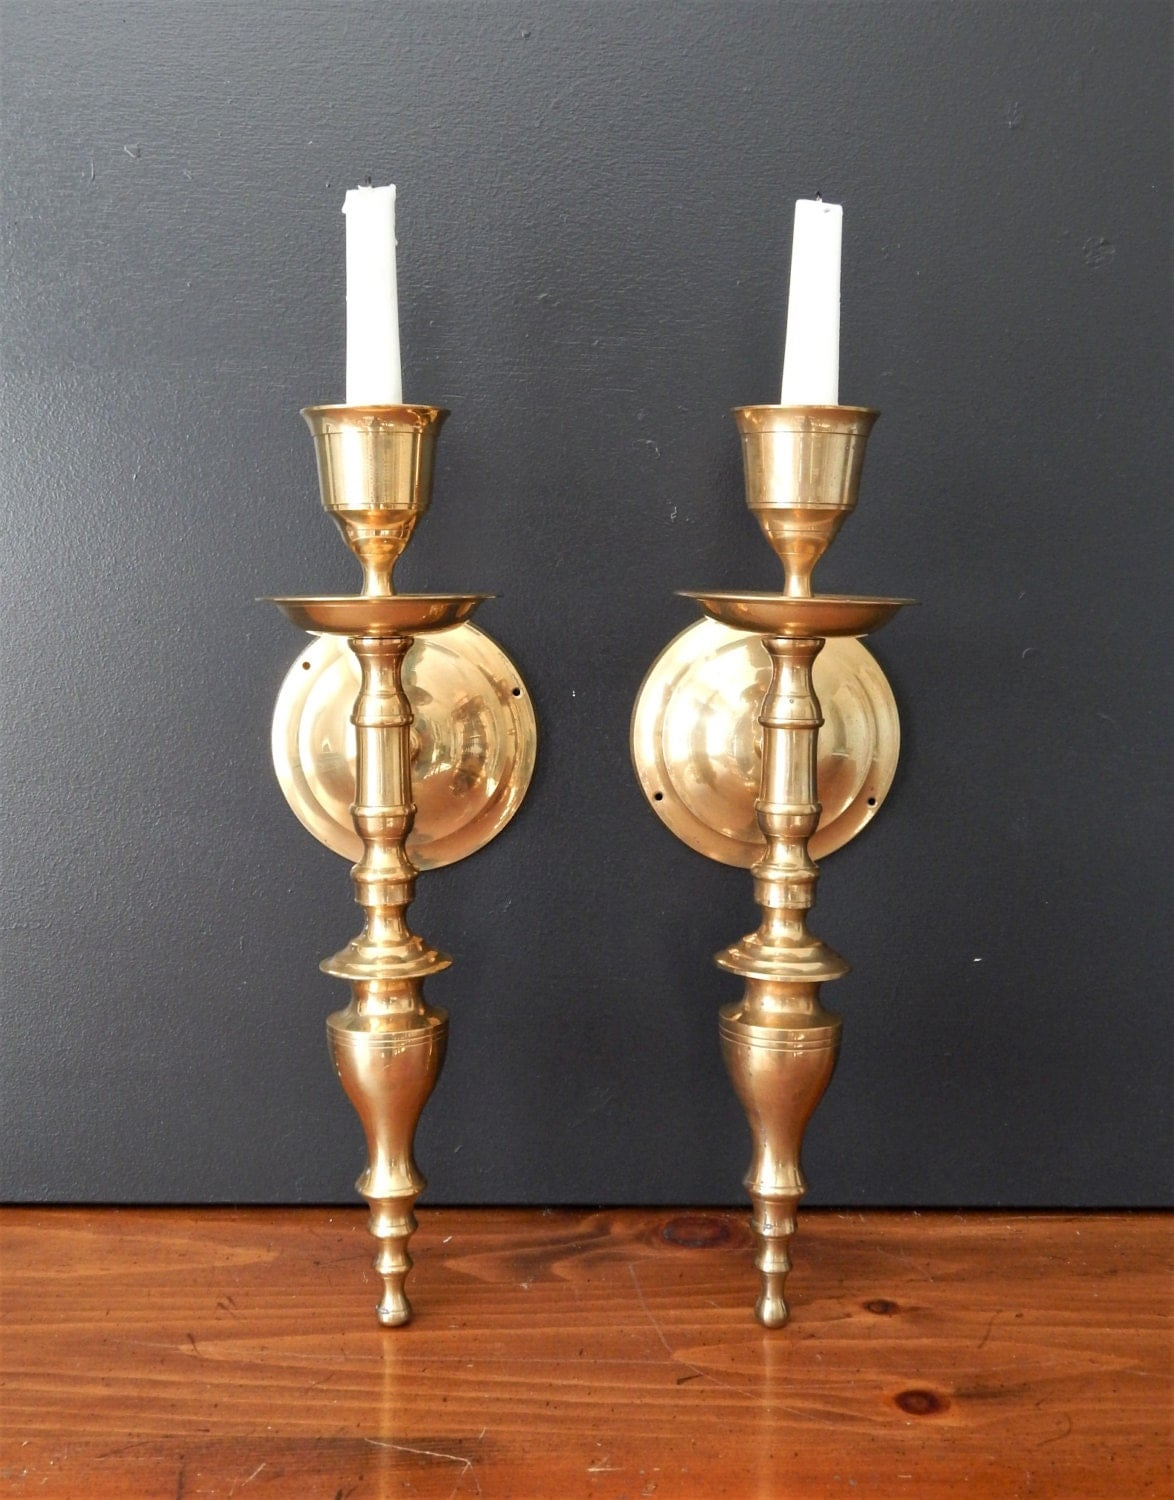 Candle Wall Sconces Antique : Large vintage brass candle sconces/Candle by NashvilleKindofLife